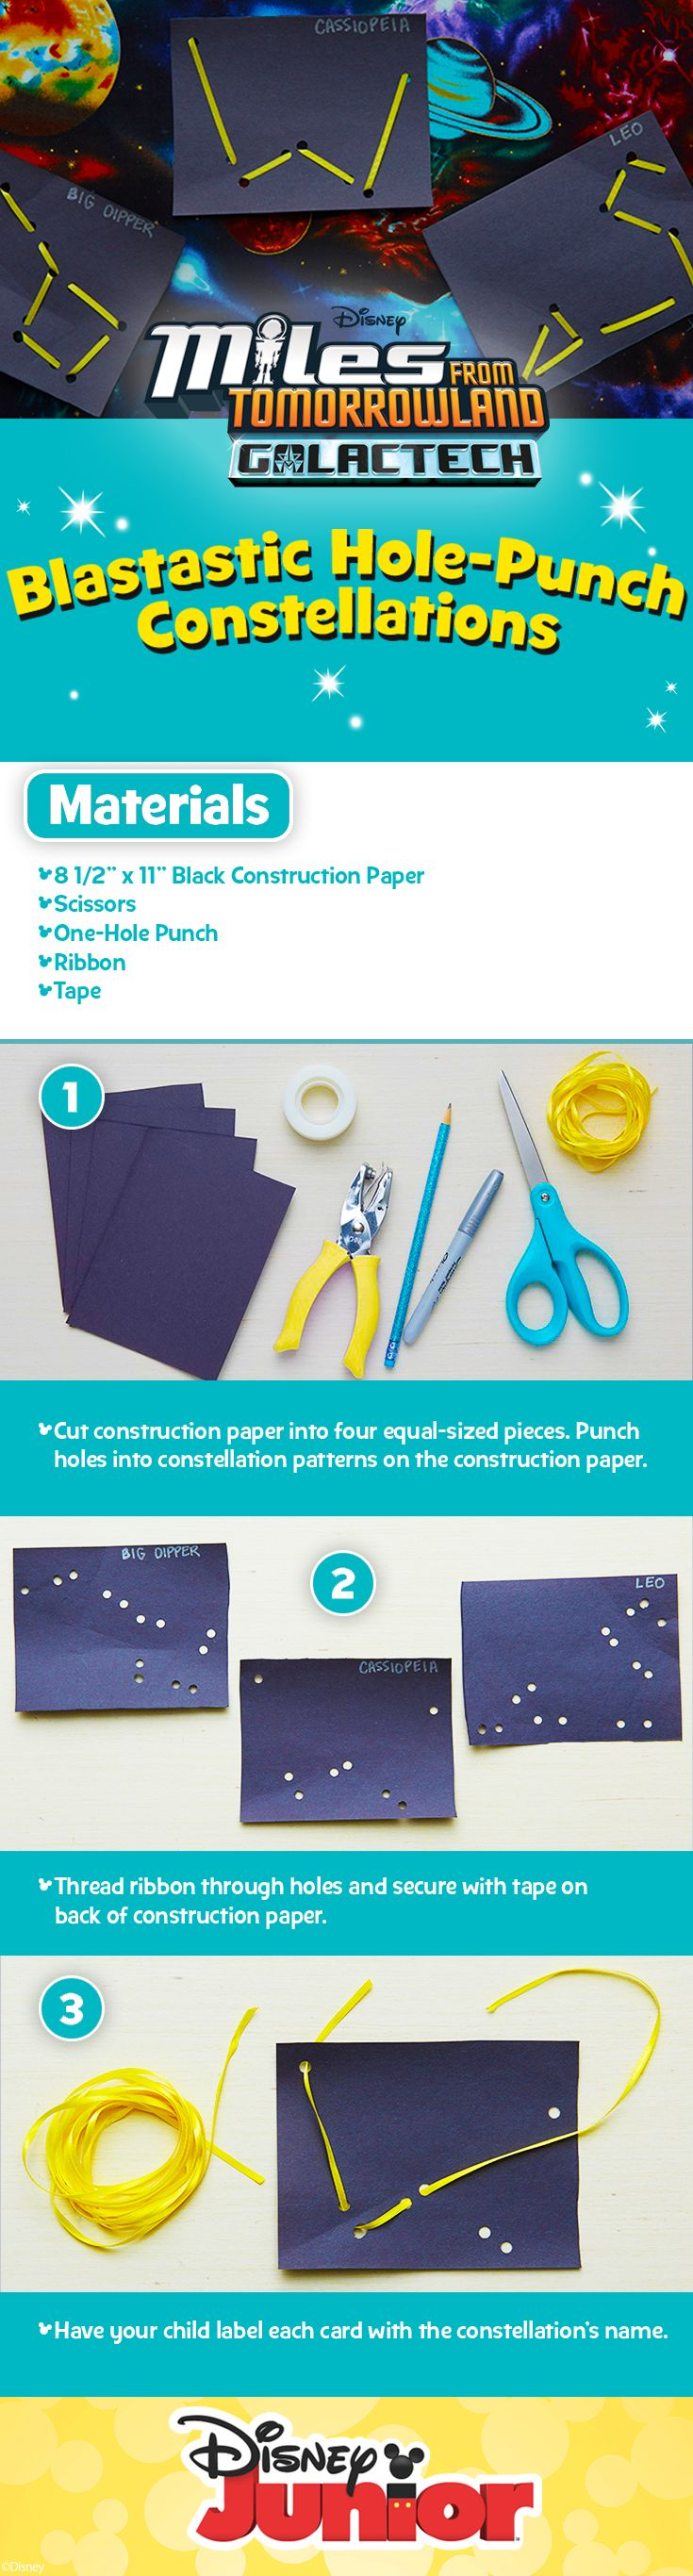 Miles From Tomorrowland Galactech Blastastic Hole-Punch Constellations Activity | Have fun creating and teaching your kids about the constellations with this simple DIY Memory Game!